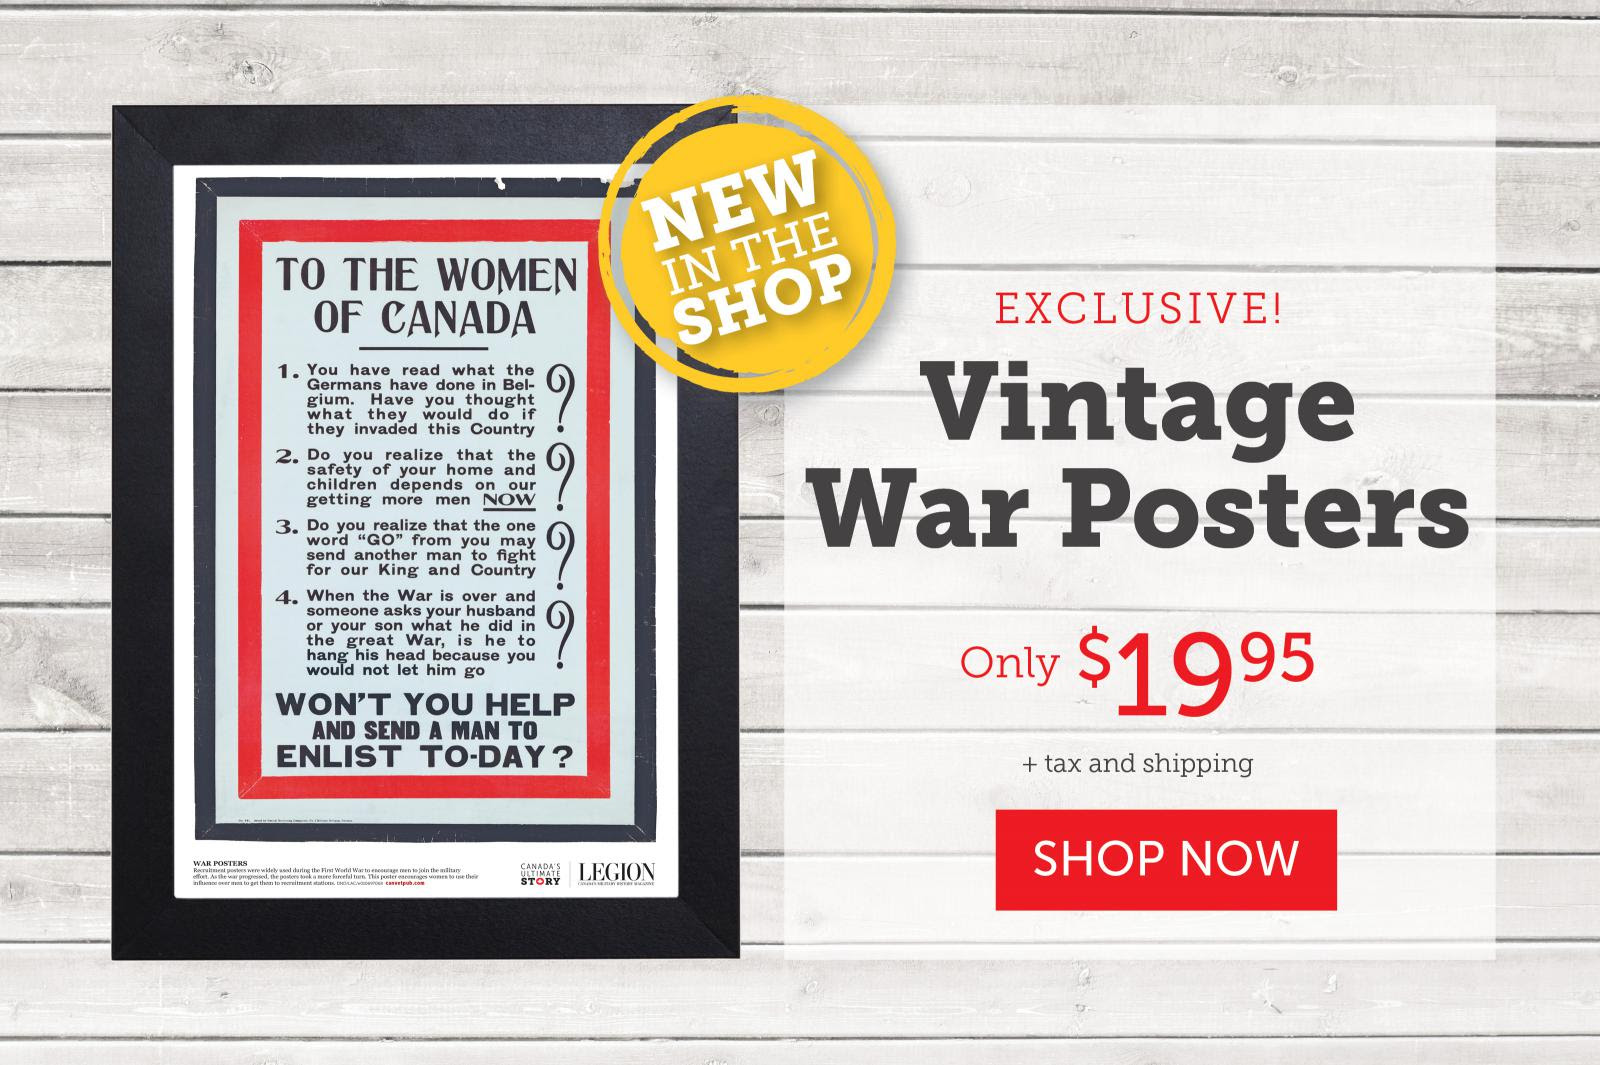 New Vintage War Posters!